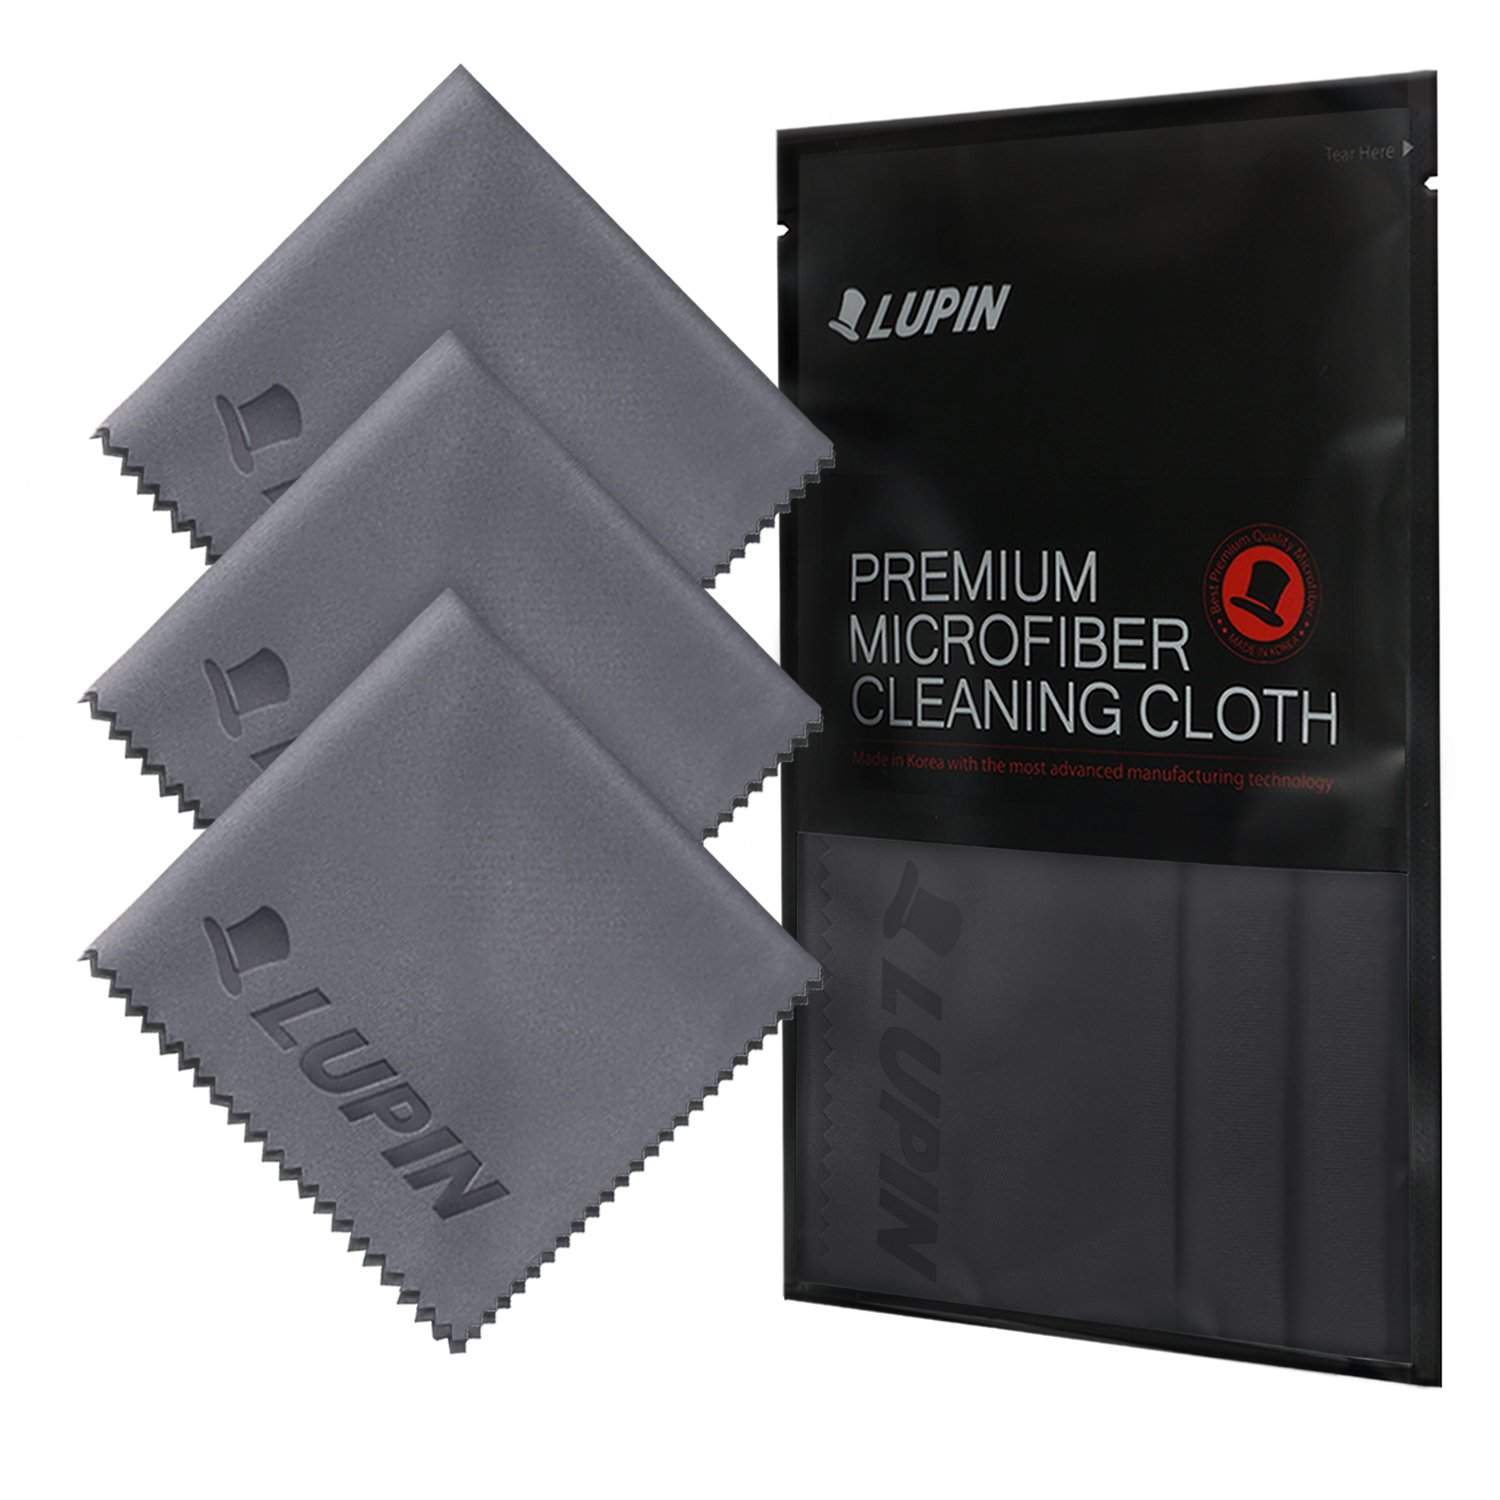 Lupin Microfiber Cleaning Cloths, Large 4 Pack Premium Ultra Lint Polishing Cloth for Cell Phone, Tablets, Laptops, iPad, Glasses, Auto Detail, TV Screens & Other Surfaces - Black LPN-L3-BK